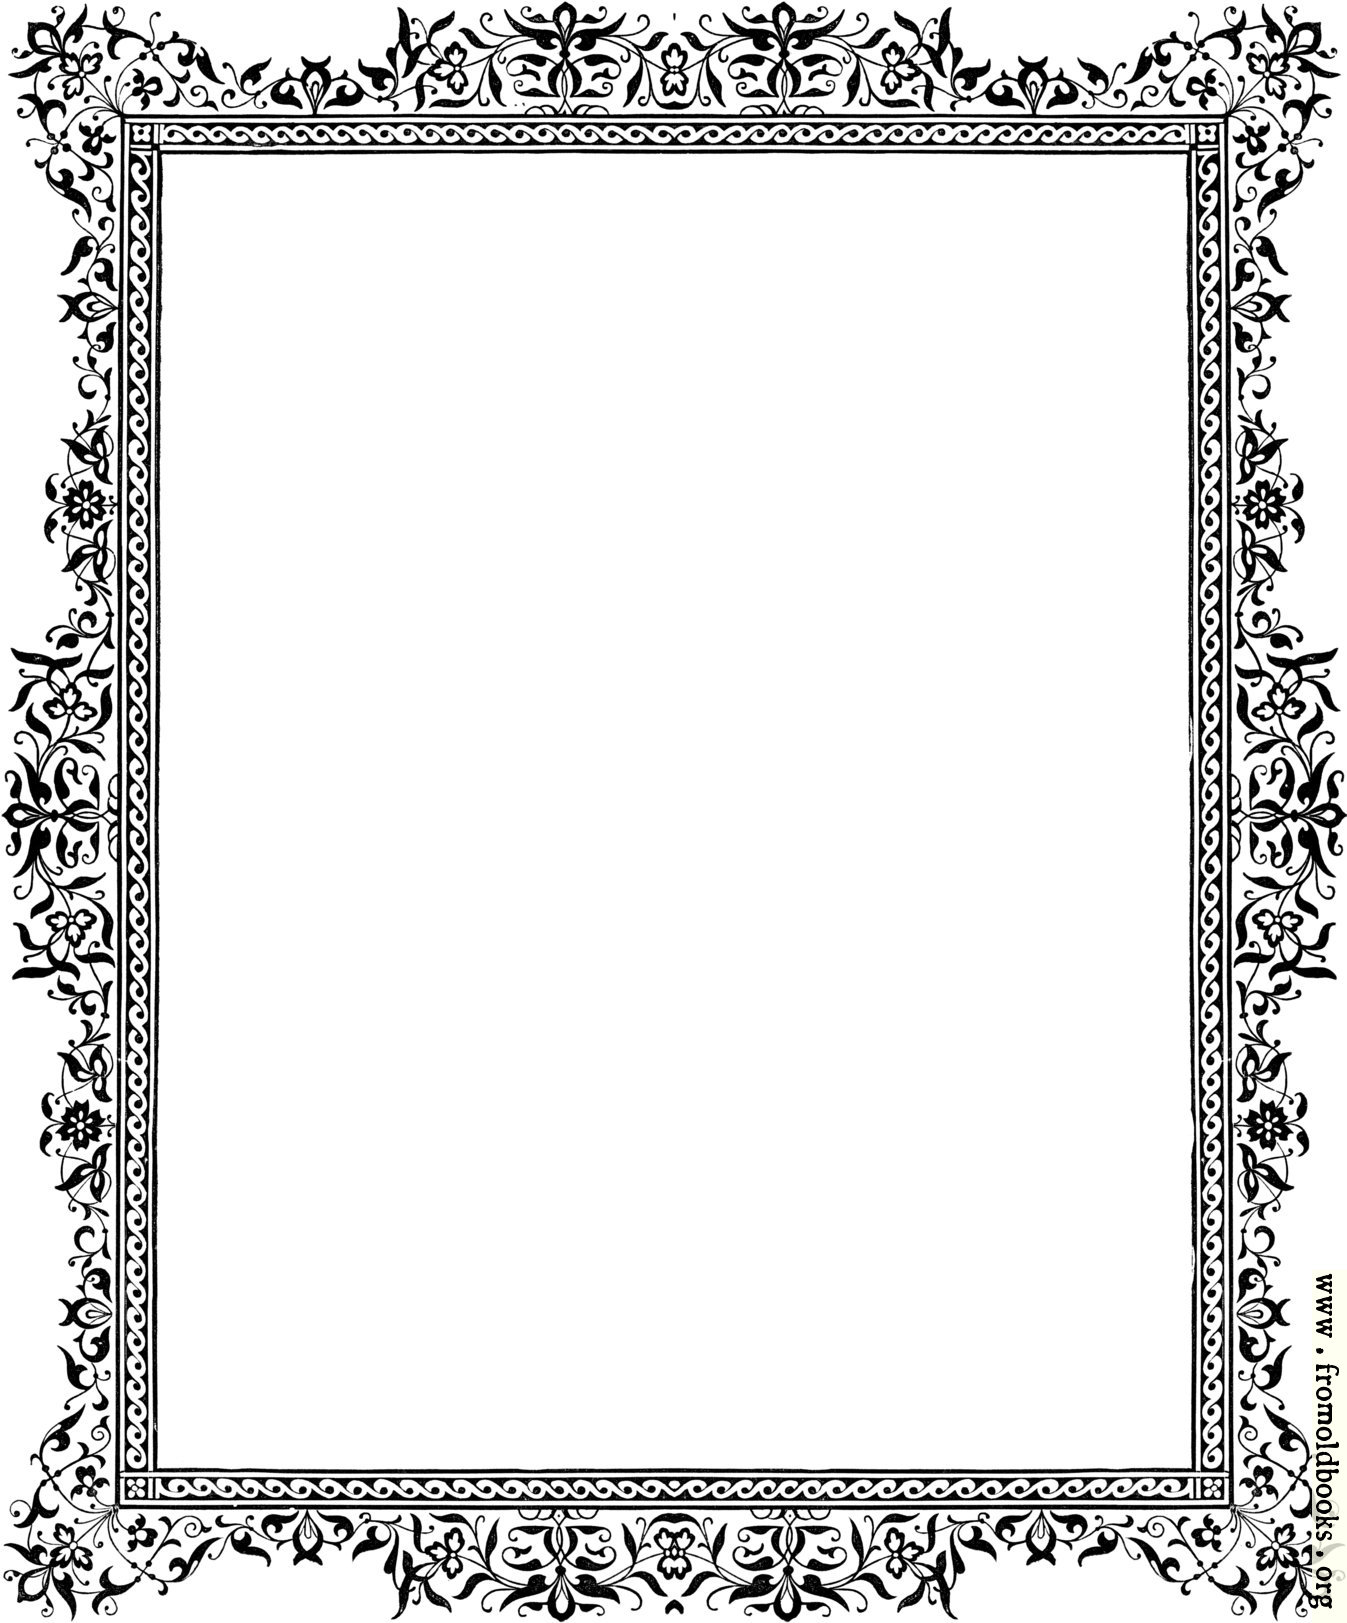 Decorative clip-art Victorian border, Black and White details